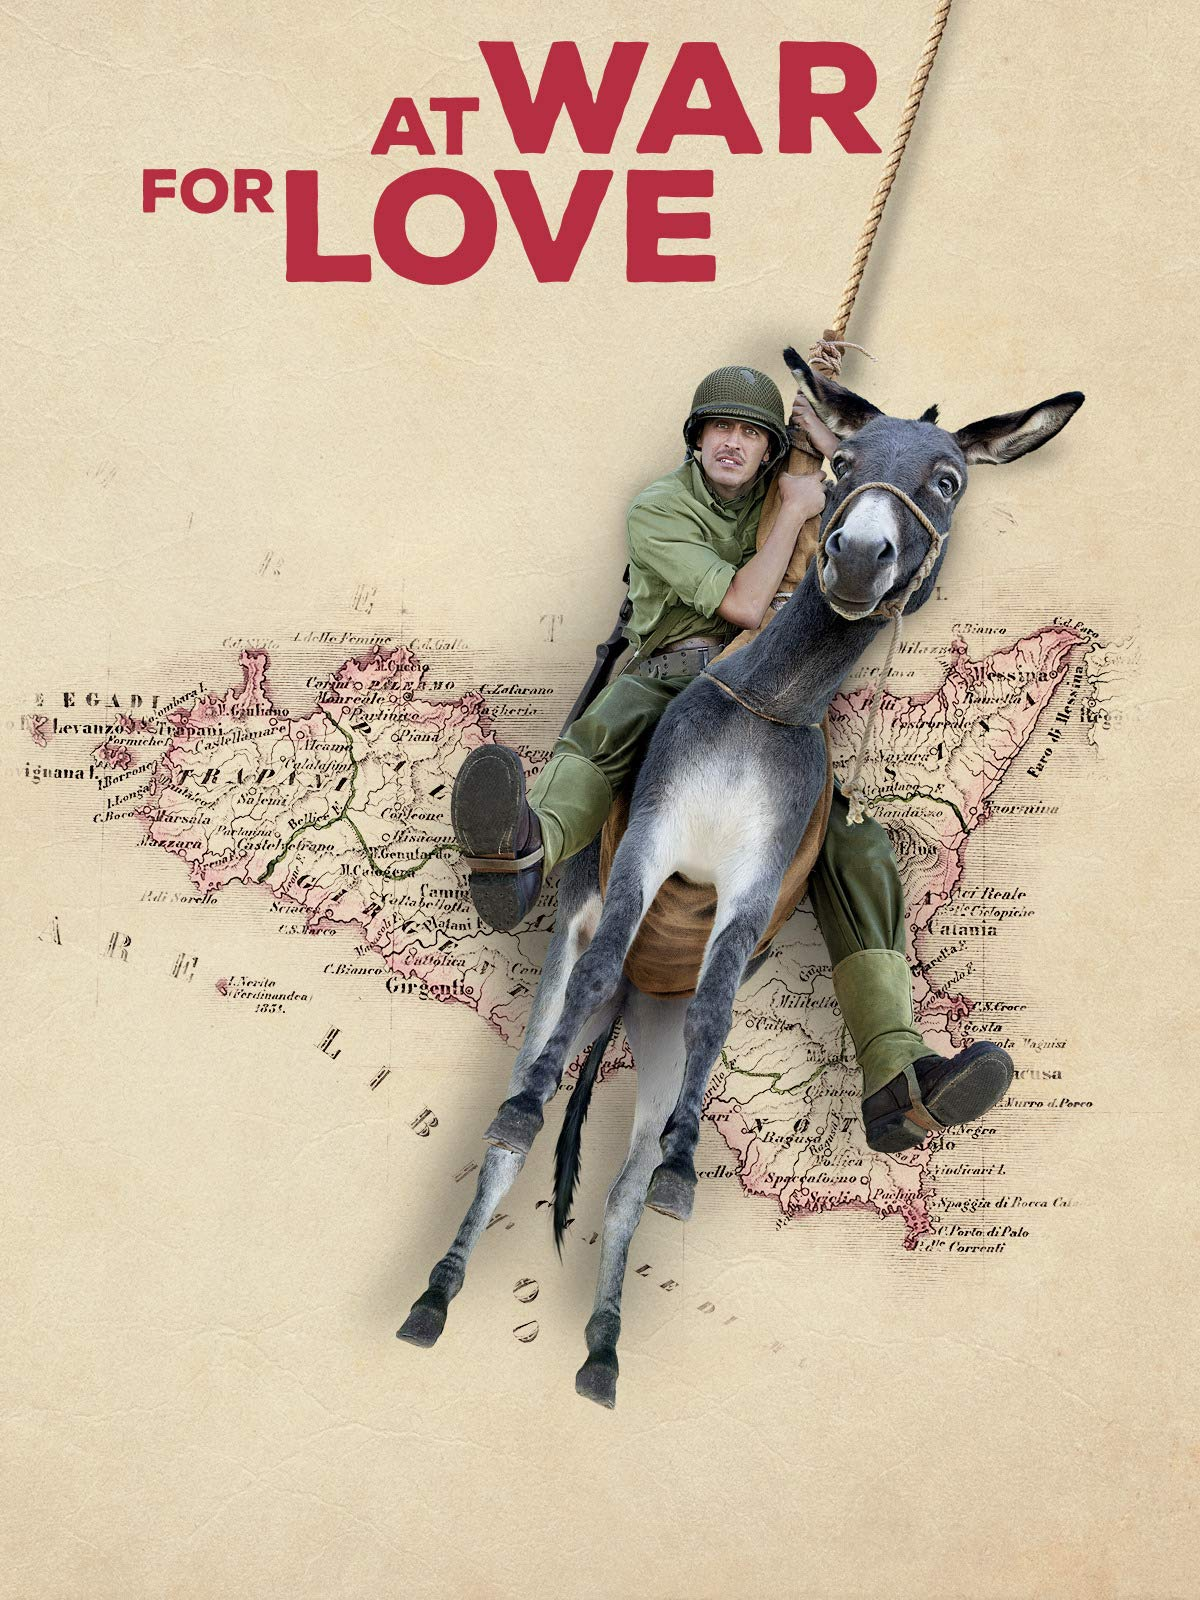 At War for Love